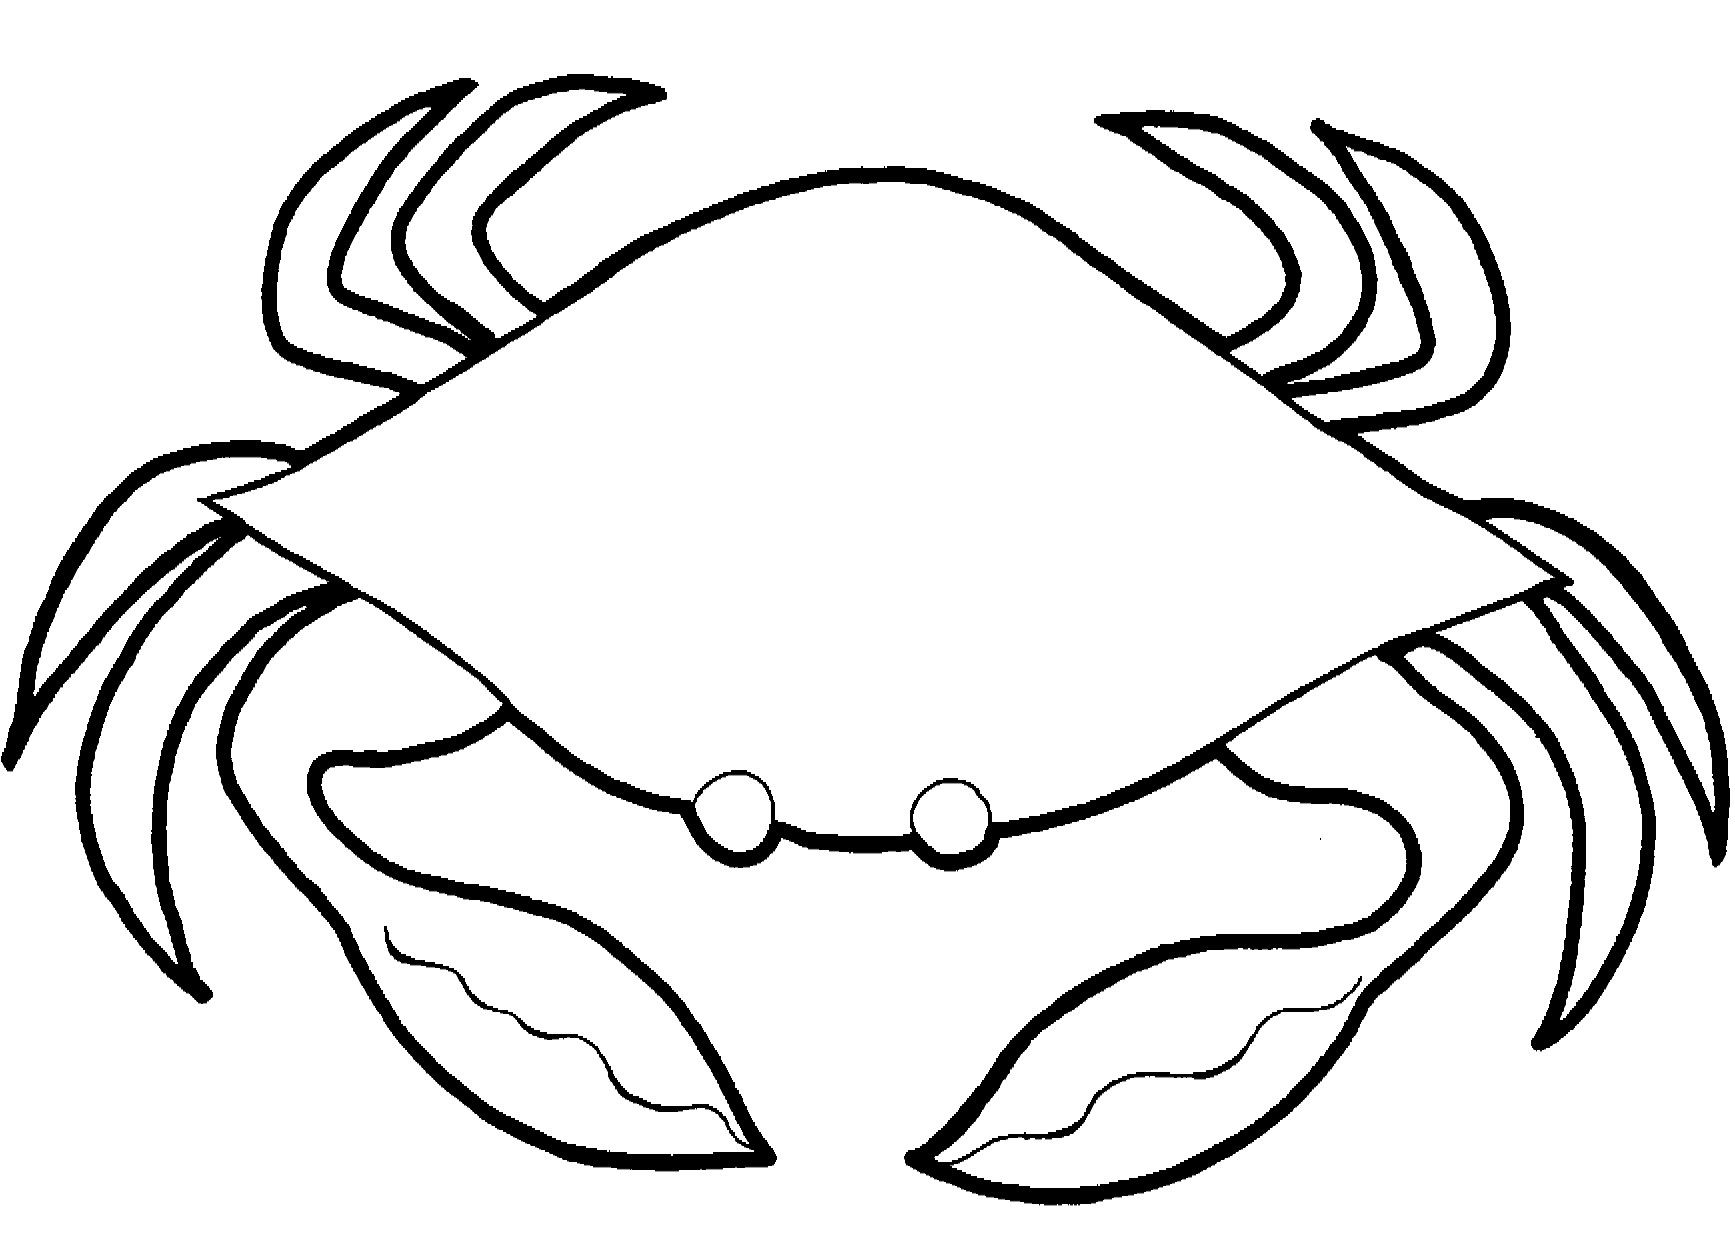 Simple Crab Drawing At GetDrawings